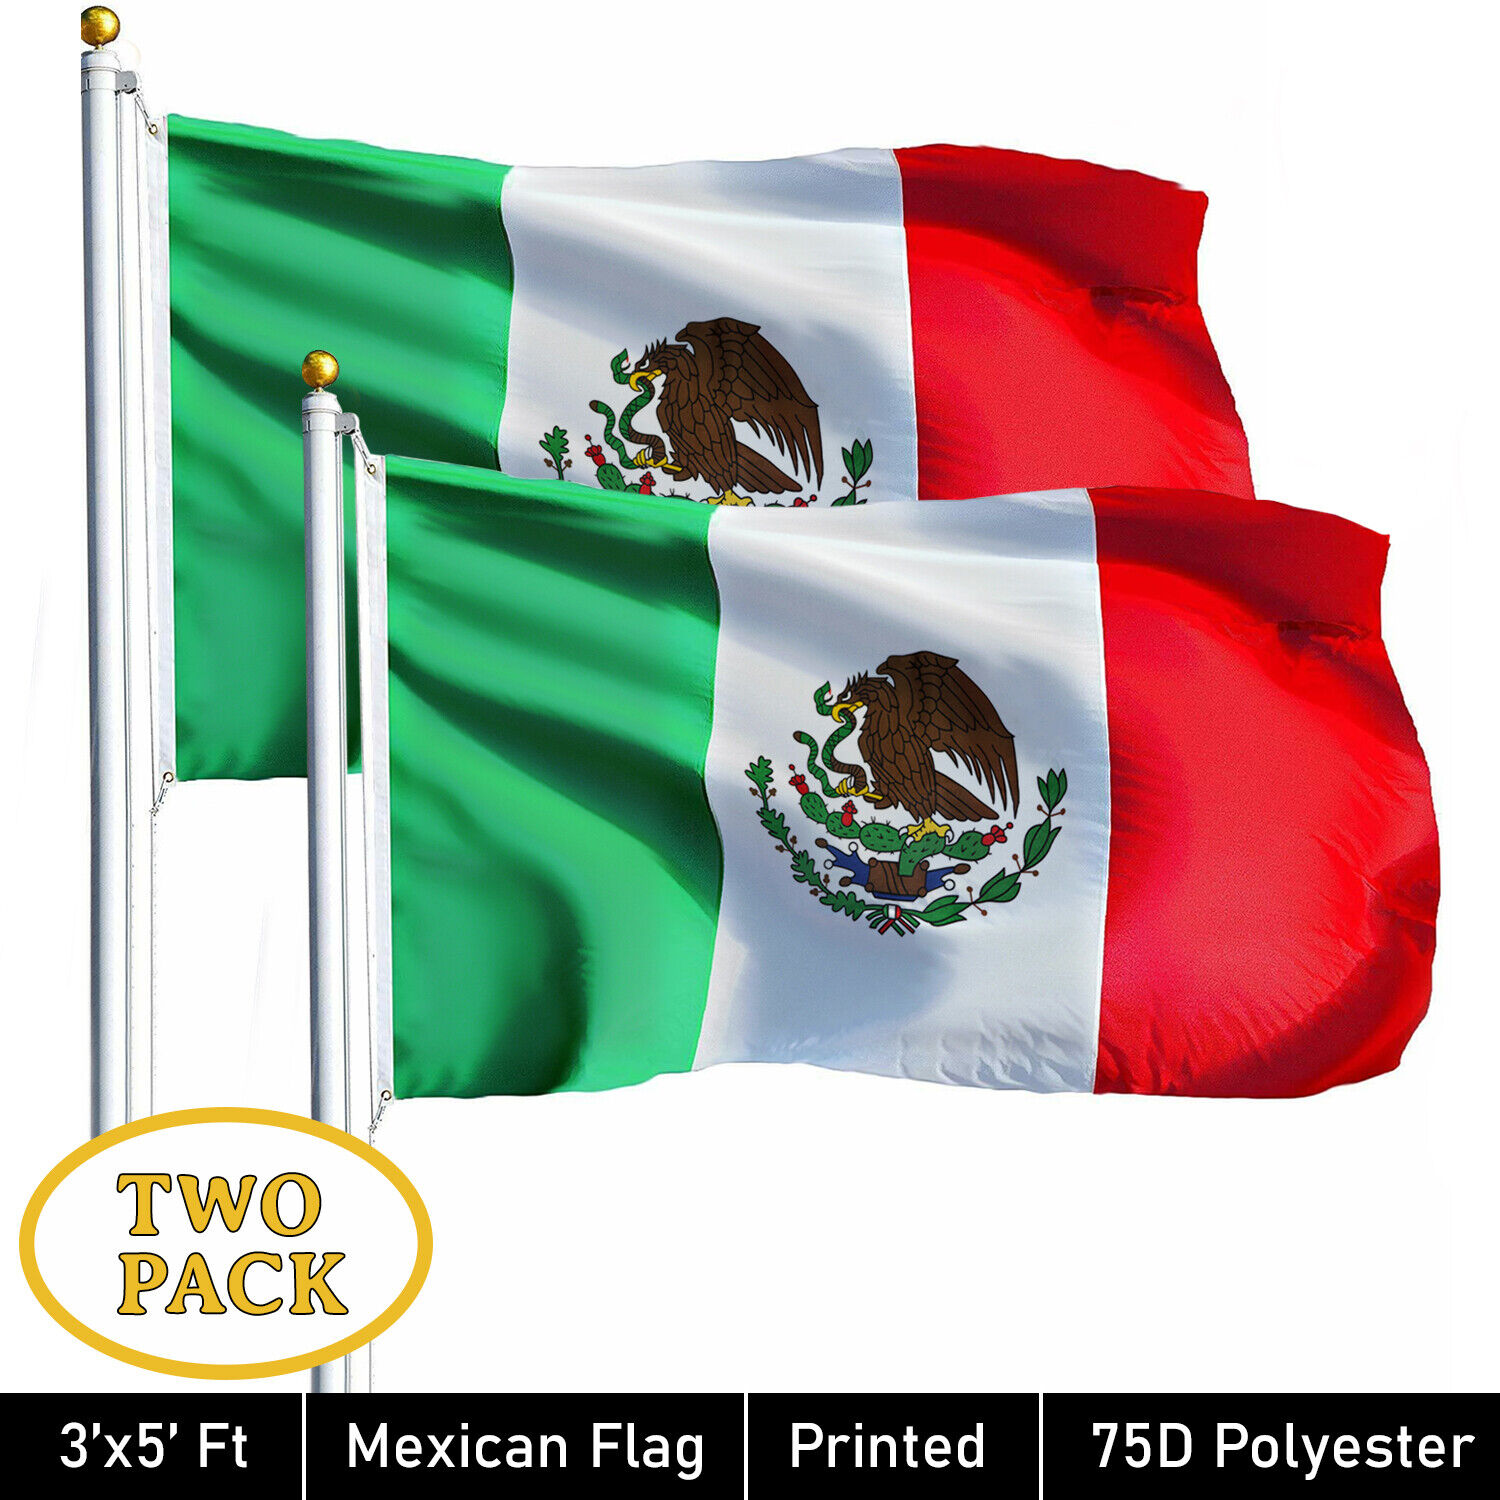 G128® TWO PACK of 3' x 5' ft Polyester Mexican Flag MEXICO